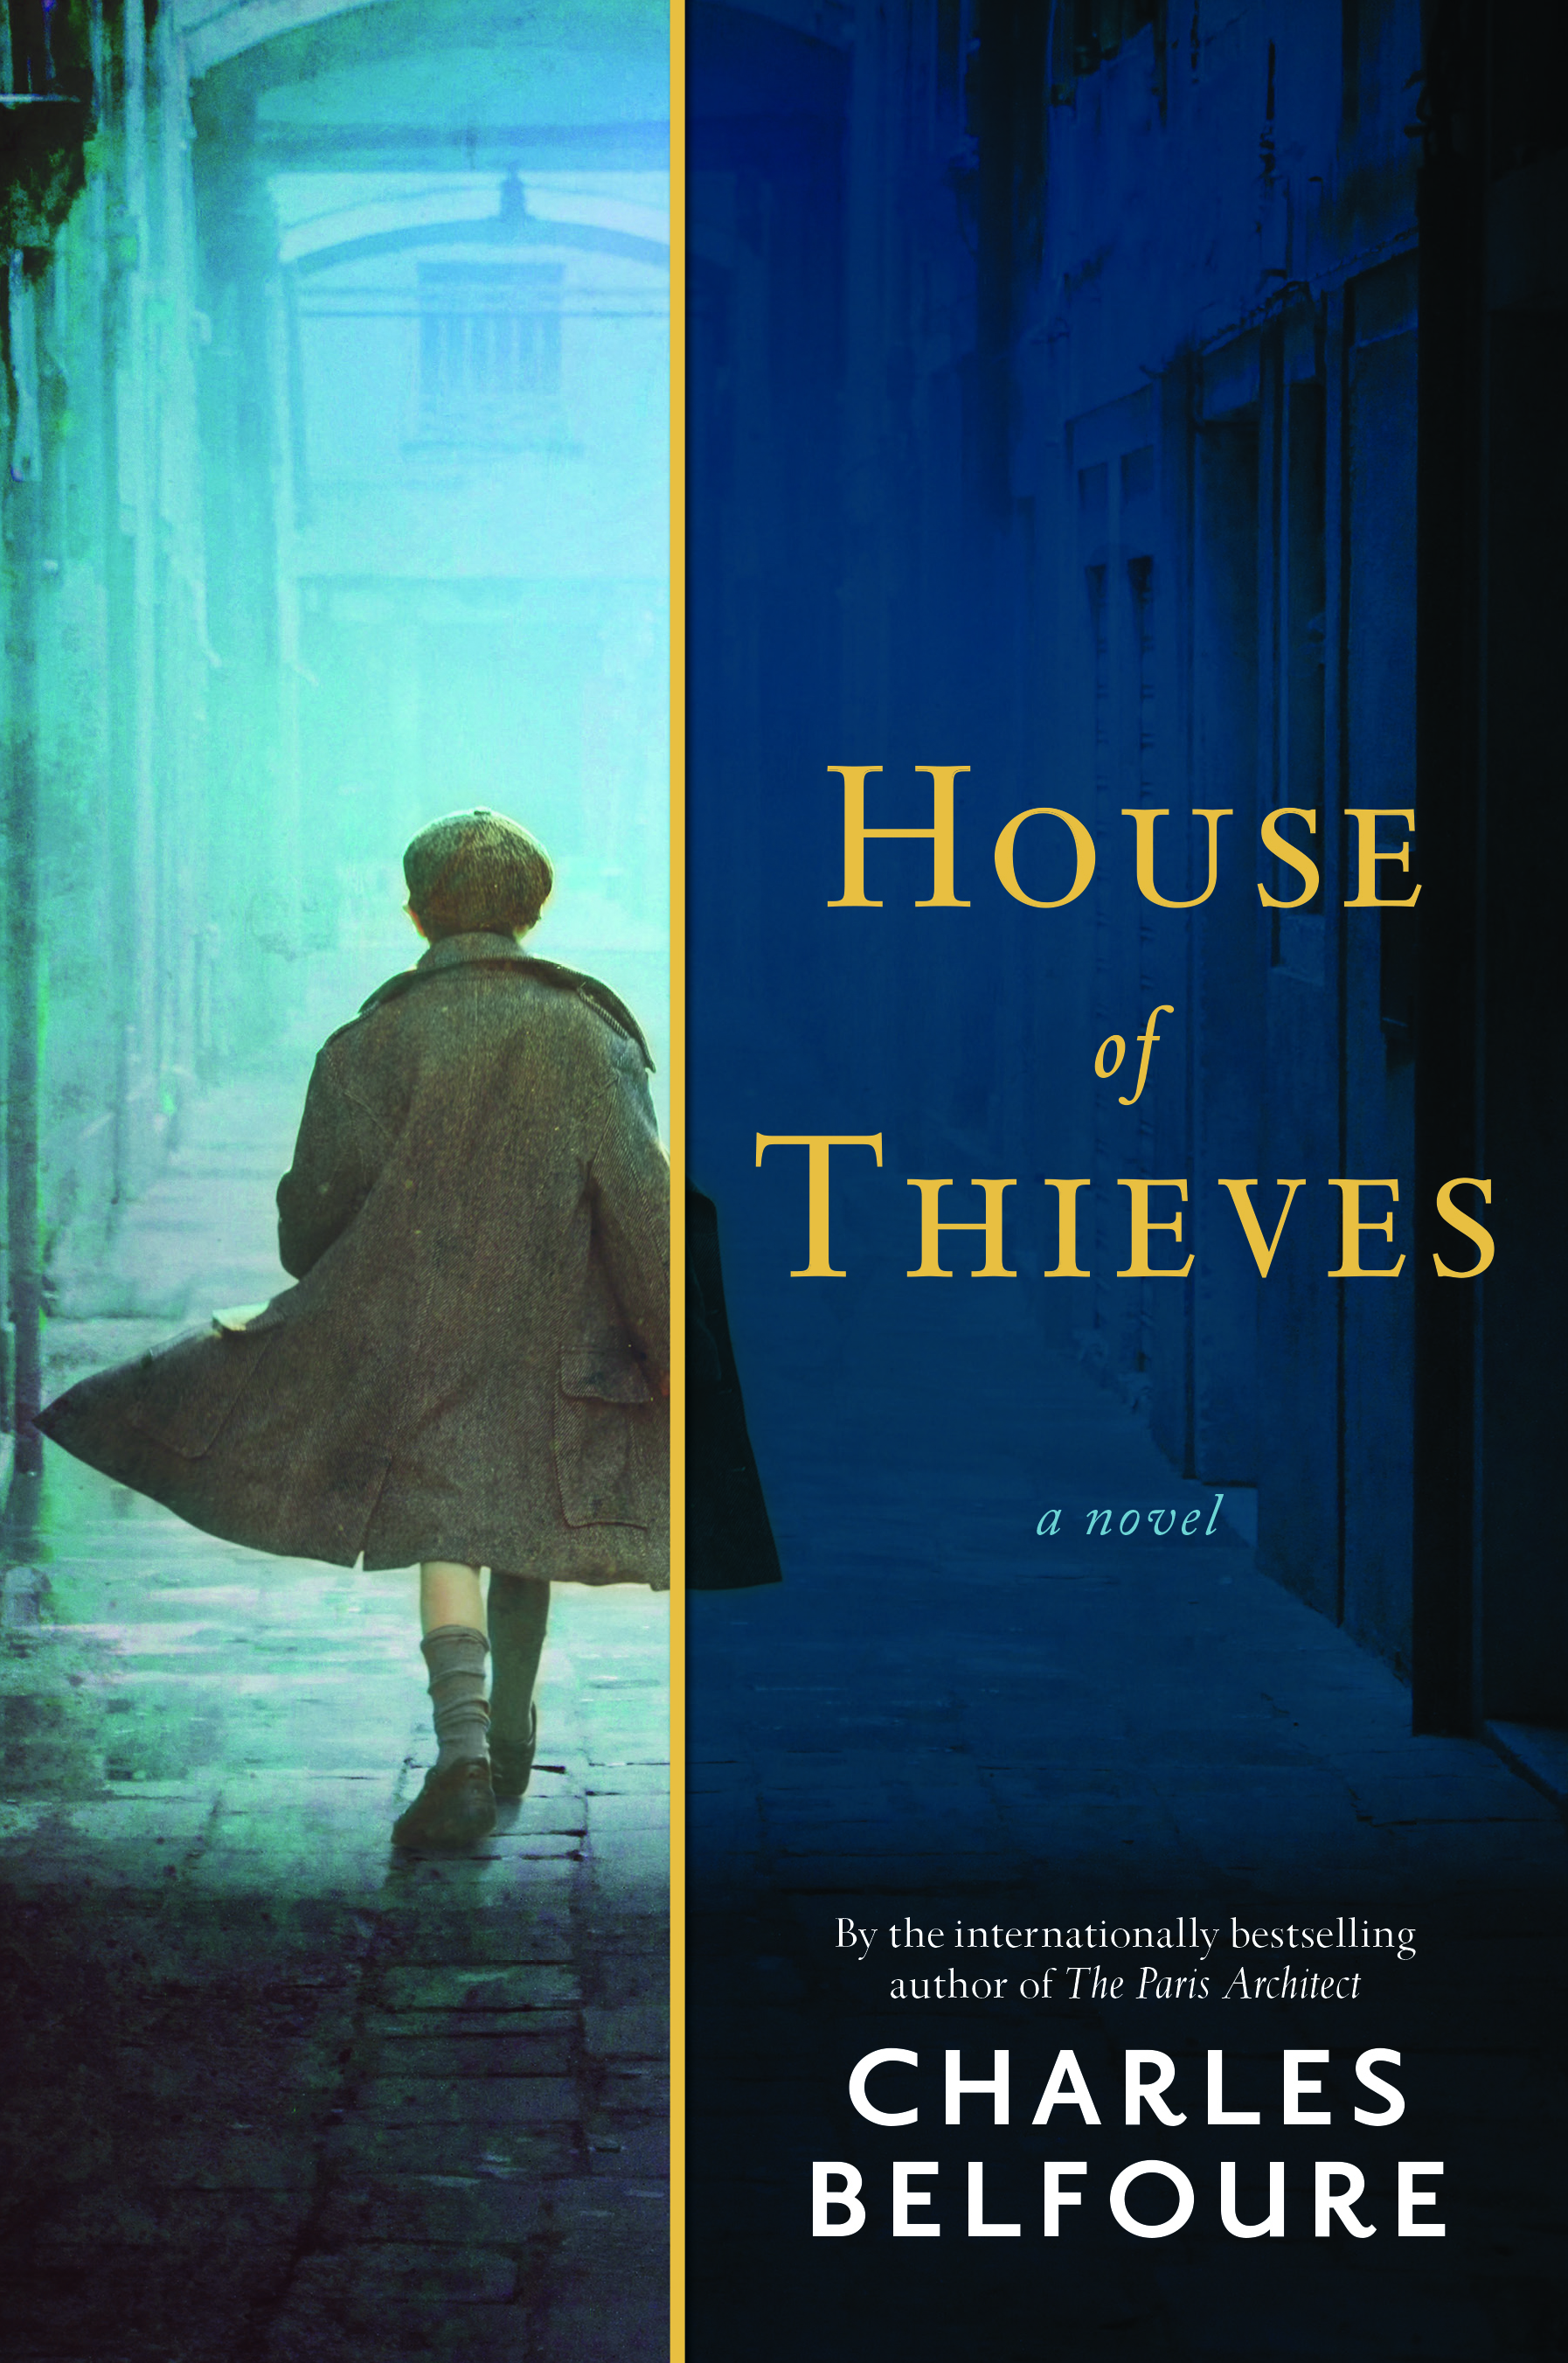 Charles Belfoure - House of Thieves